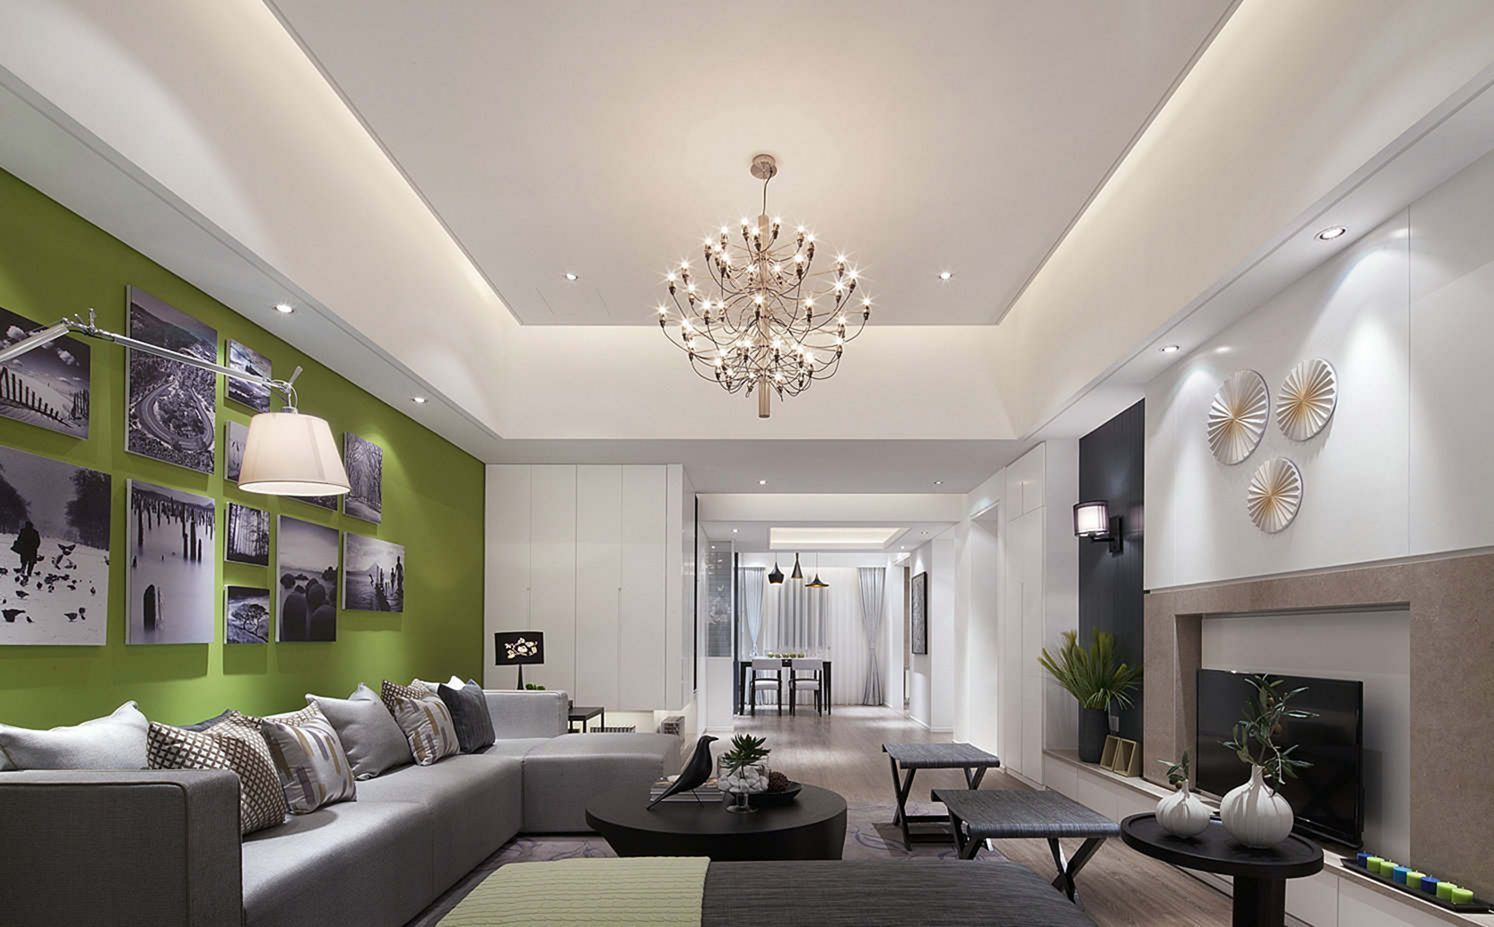 Residential Low Budget Living Room Small House Simple Ceiling Design Rectangular Living Rooms Simple Ceiling Design Ceiling Design Living Room